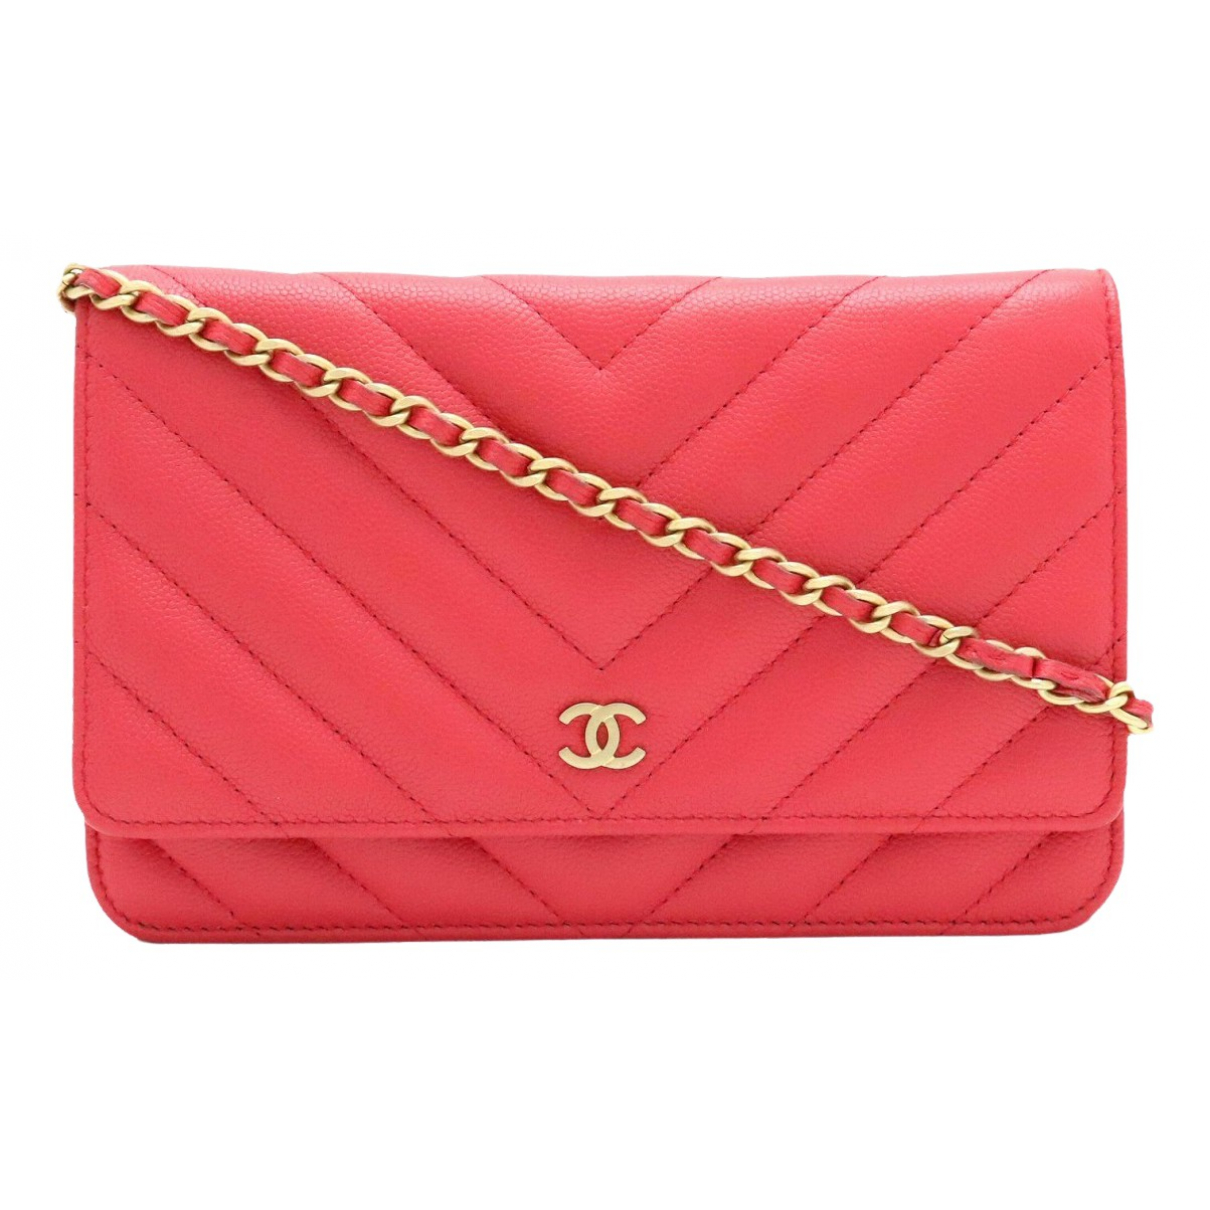 Chanel Wallet on Chain Pink Leather Clutch bag for Women \N